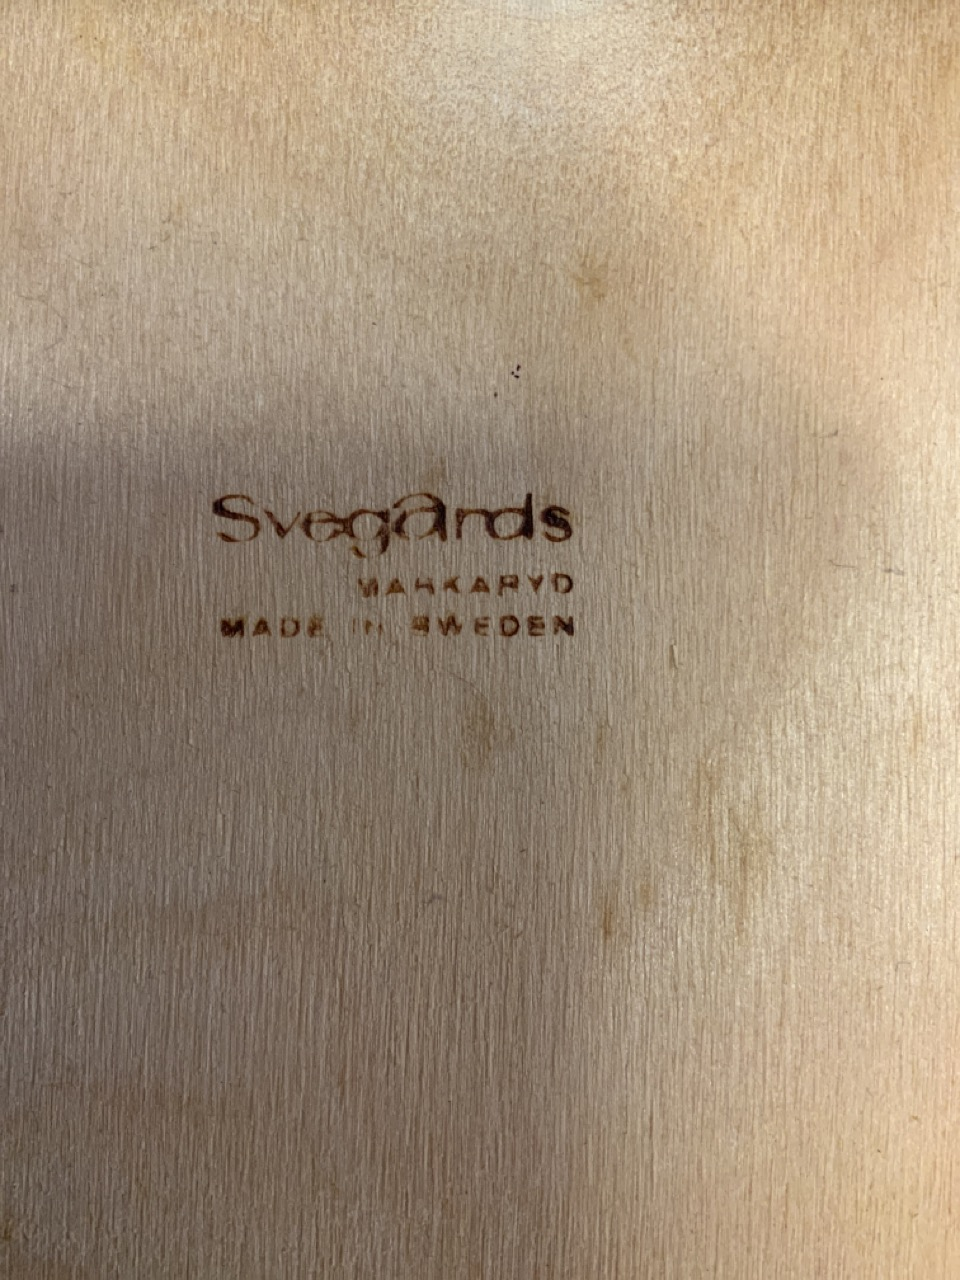 A set of six mid century rosewood Scandinavian dining chairs by Svegards Markaryd. To include two - Image 2 of 6